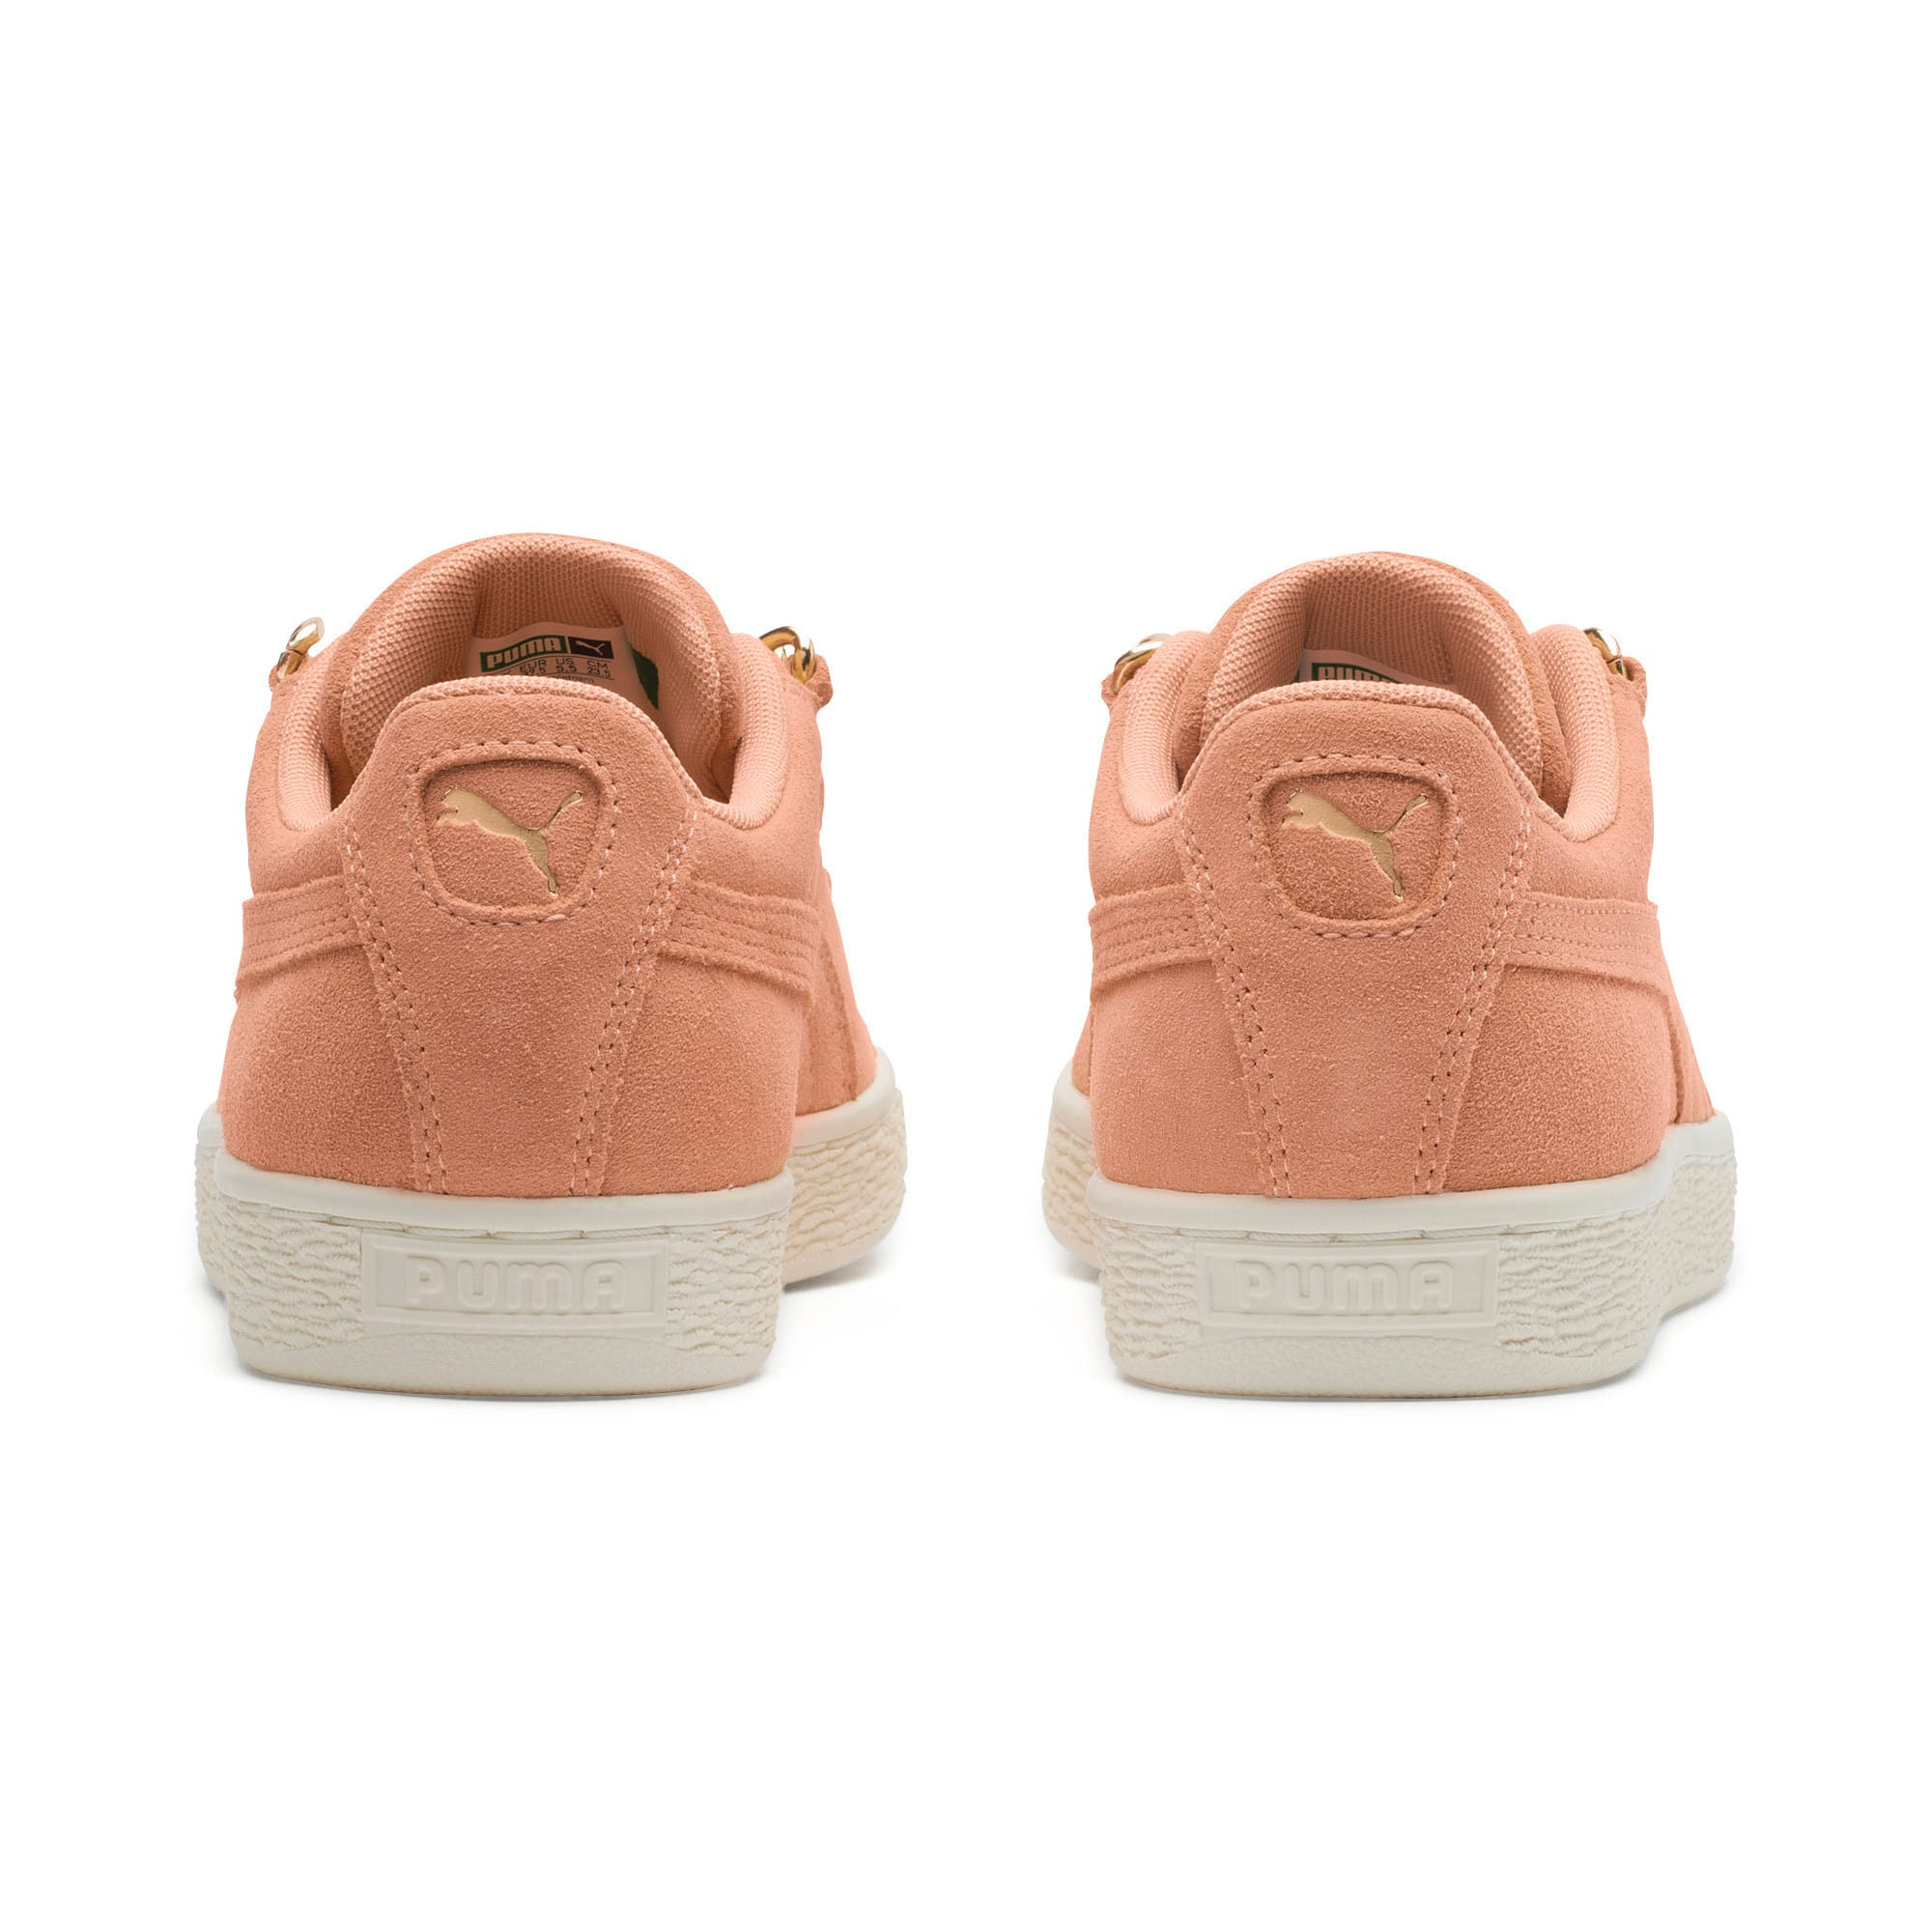 Thumbnail 3 of Suede Classic Chains Women's Trainers, Dusty Coral-Puma Team Gold, medium-IND